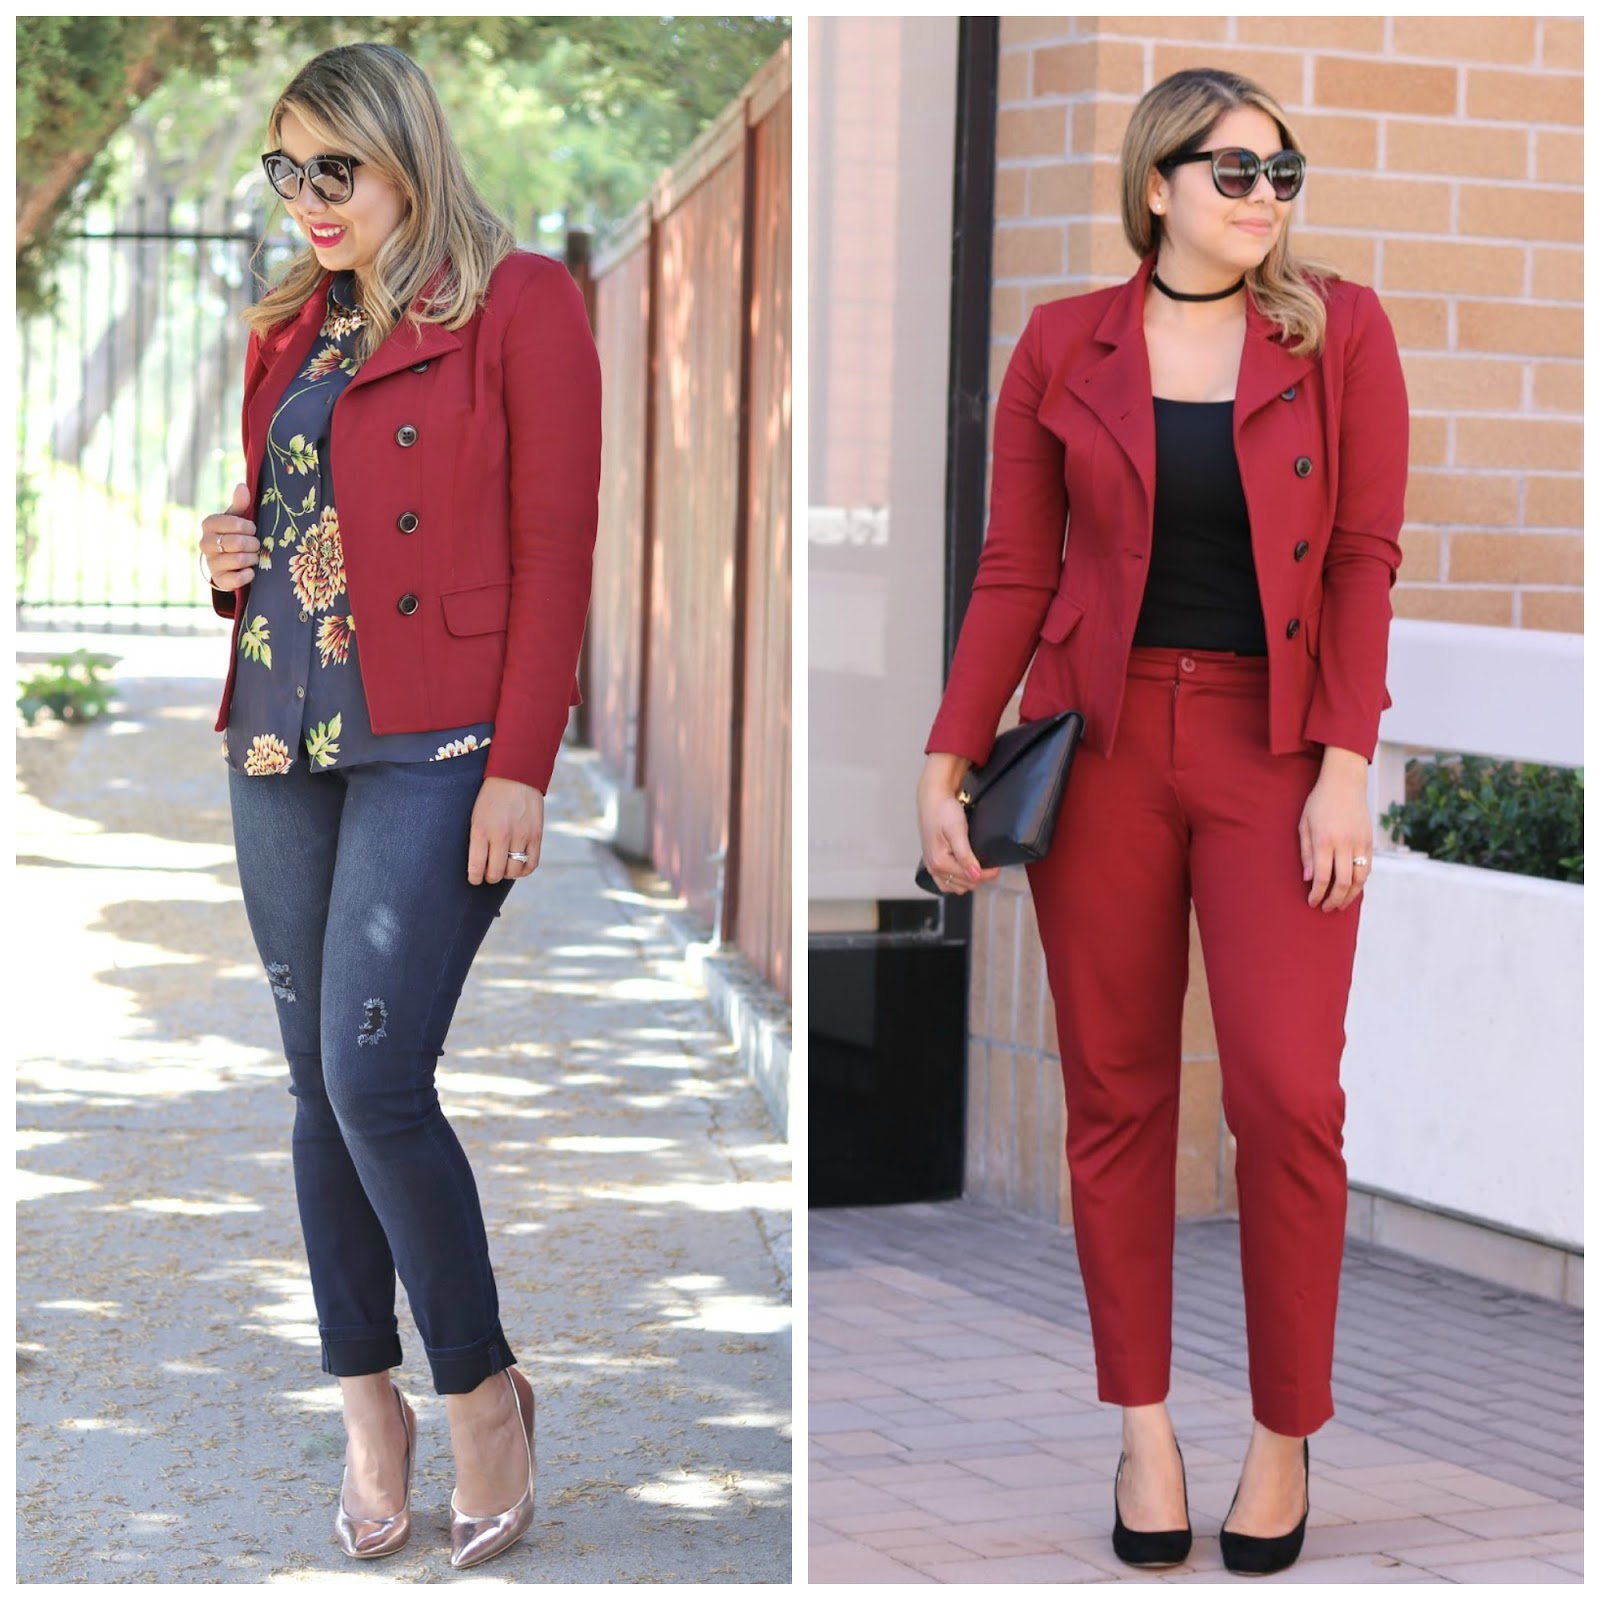 cabi fall 2016, cabi red outing blazer, cabi ava trousers, cabi daisy top, cabi blogger, fall 2016 fashion